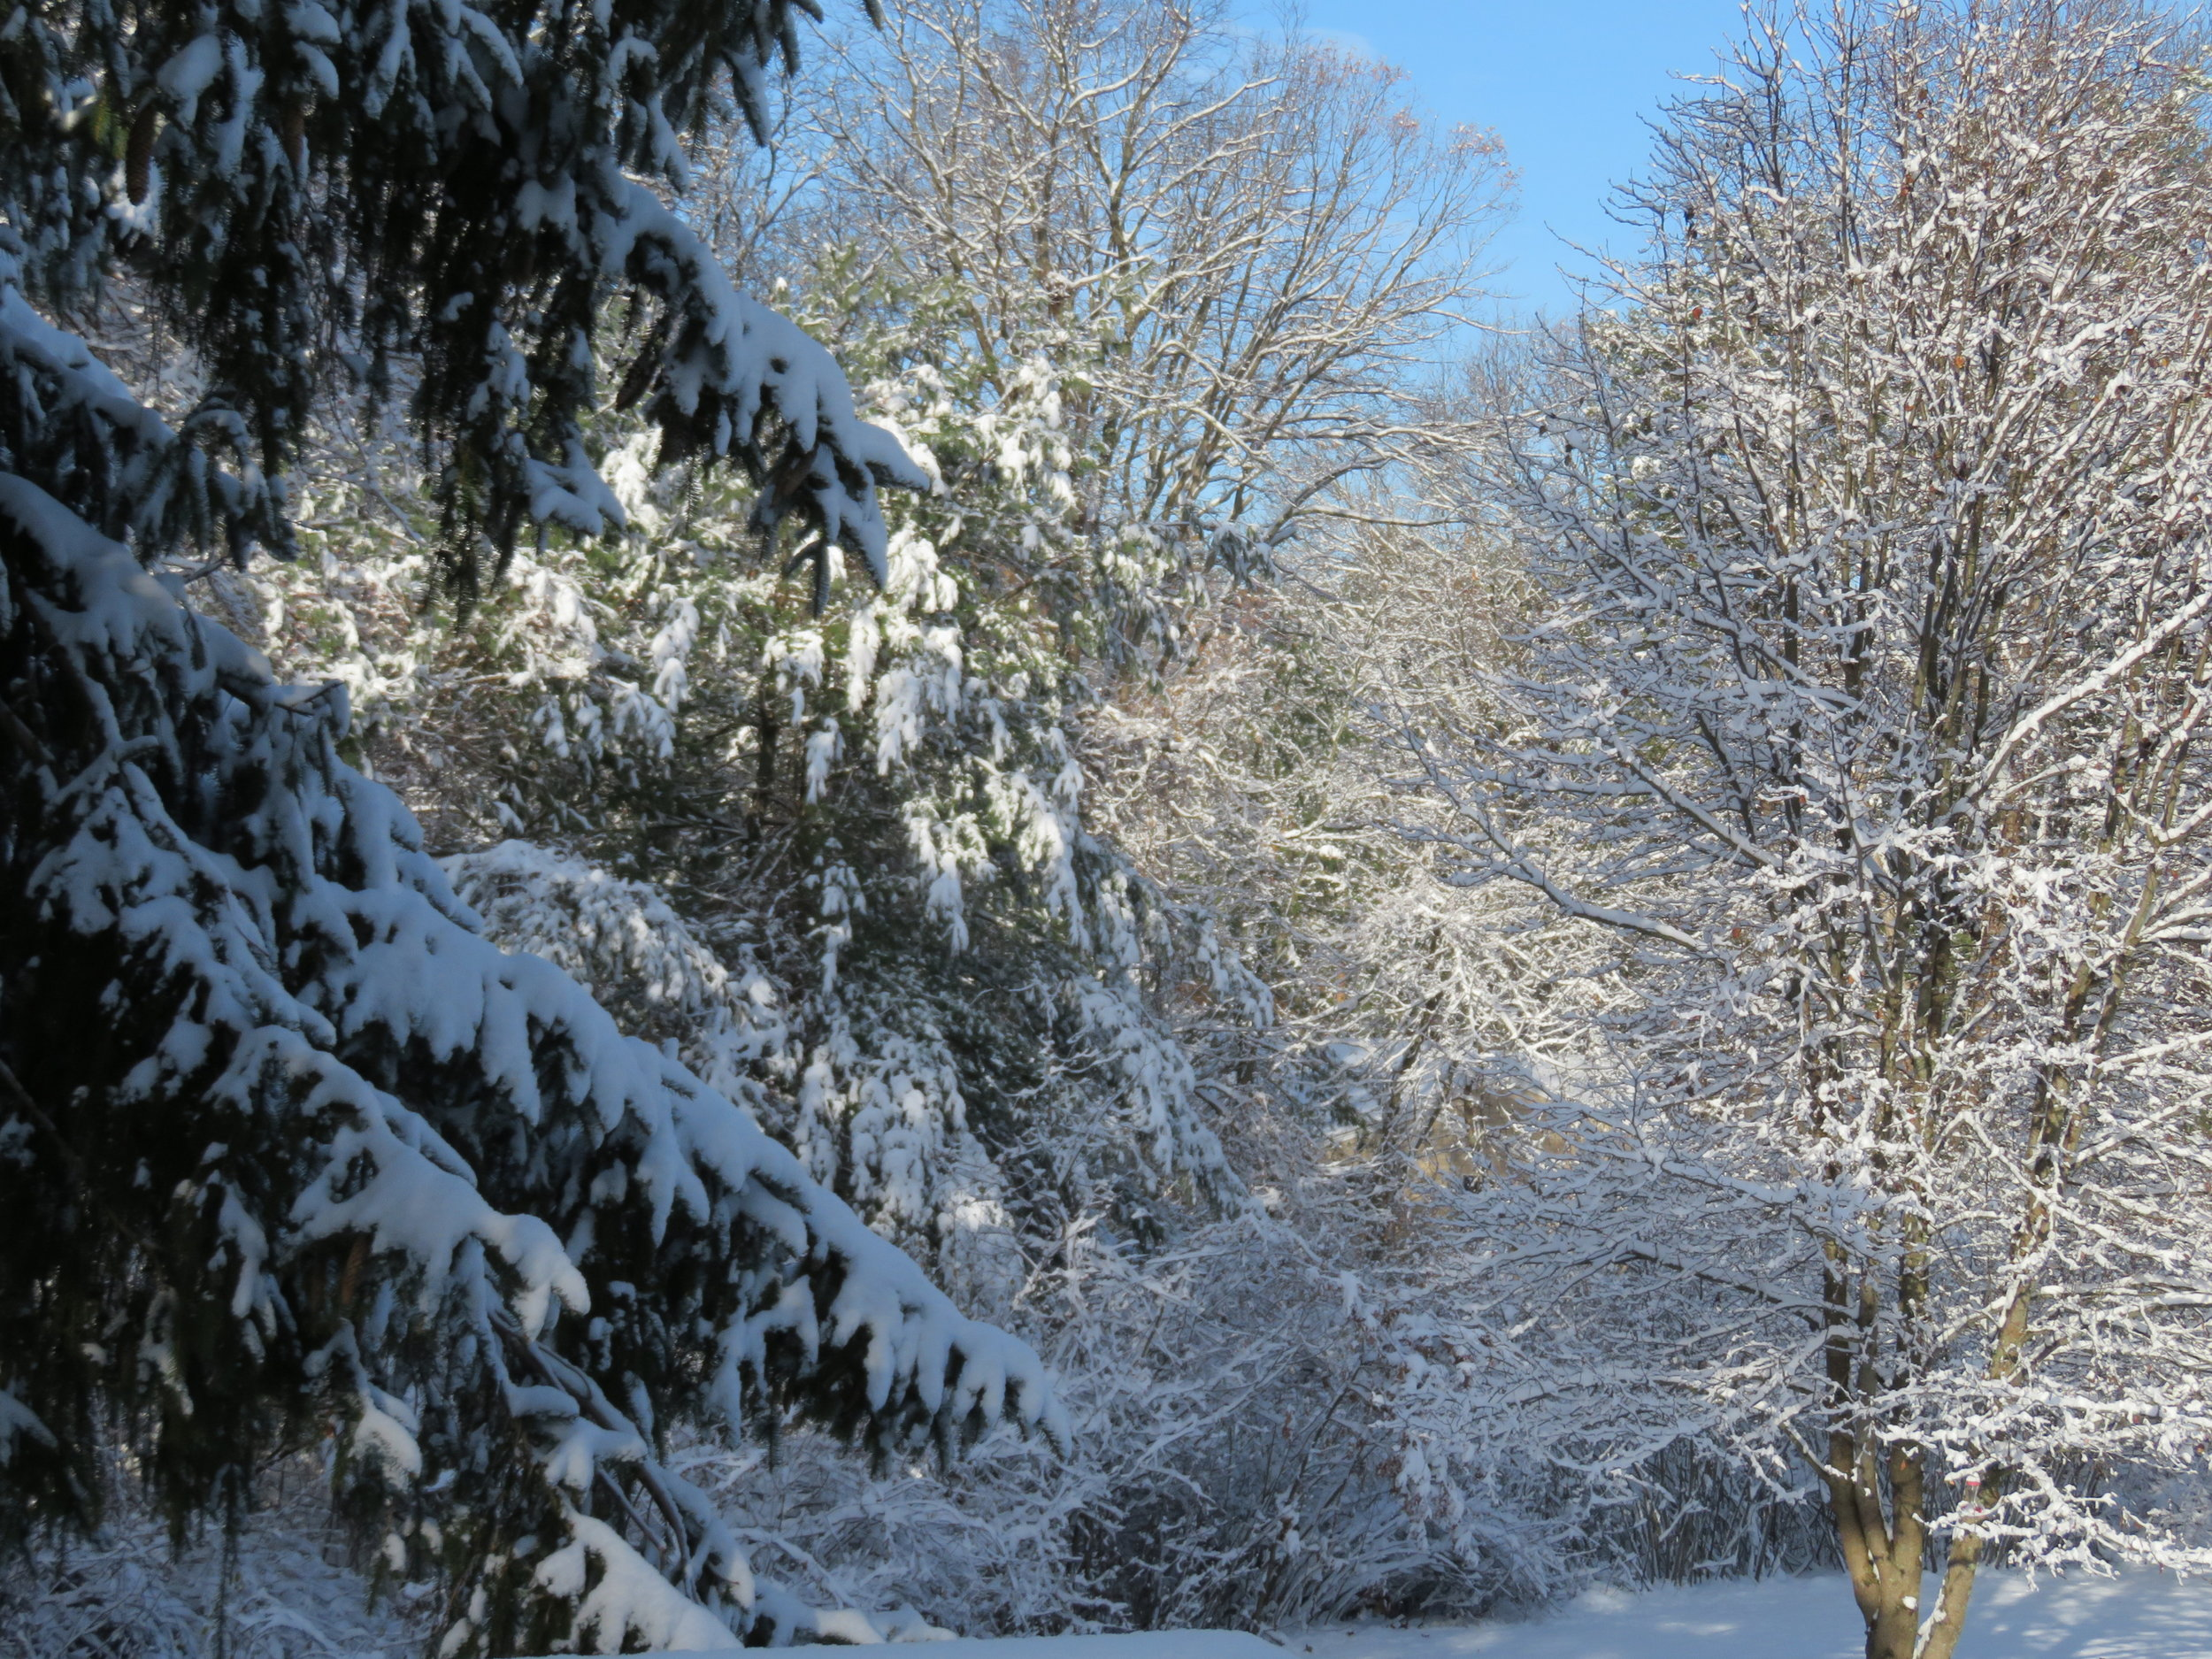 Morning after the first snow ... winter wonderland!